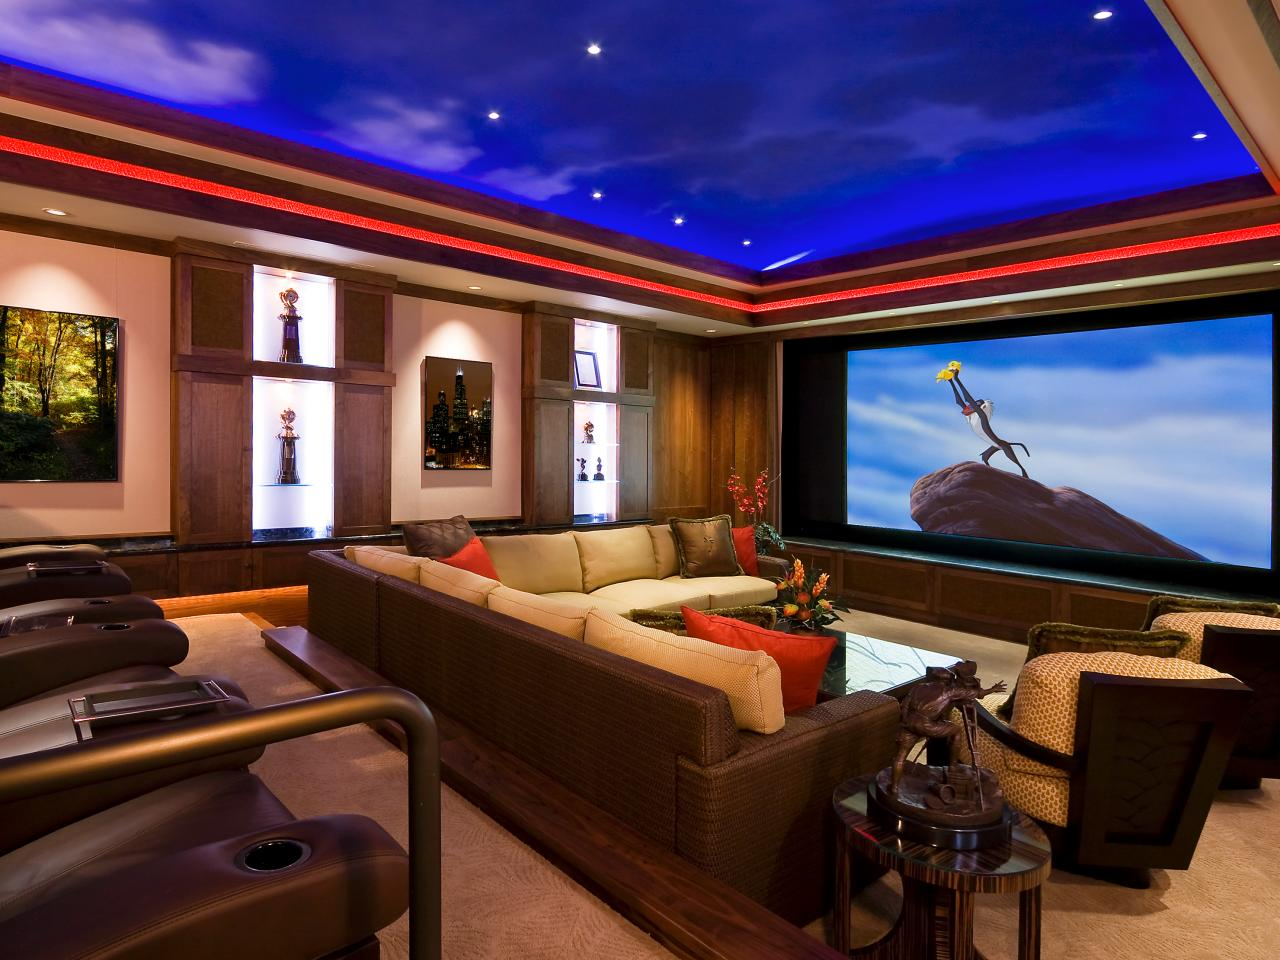 Choosing a Room for a Home Theater  HGTV